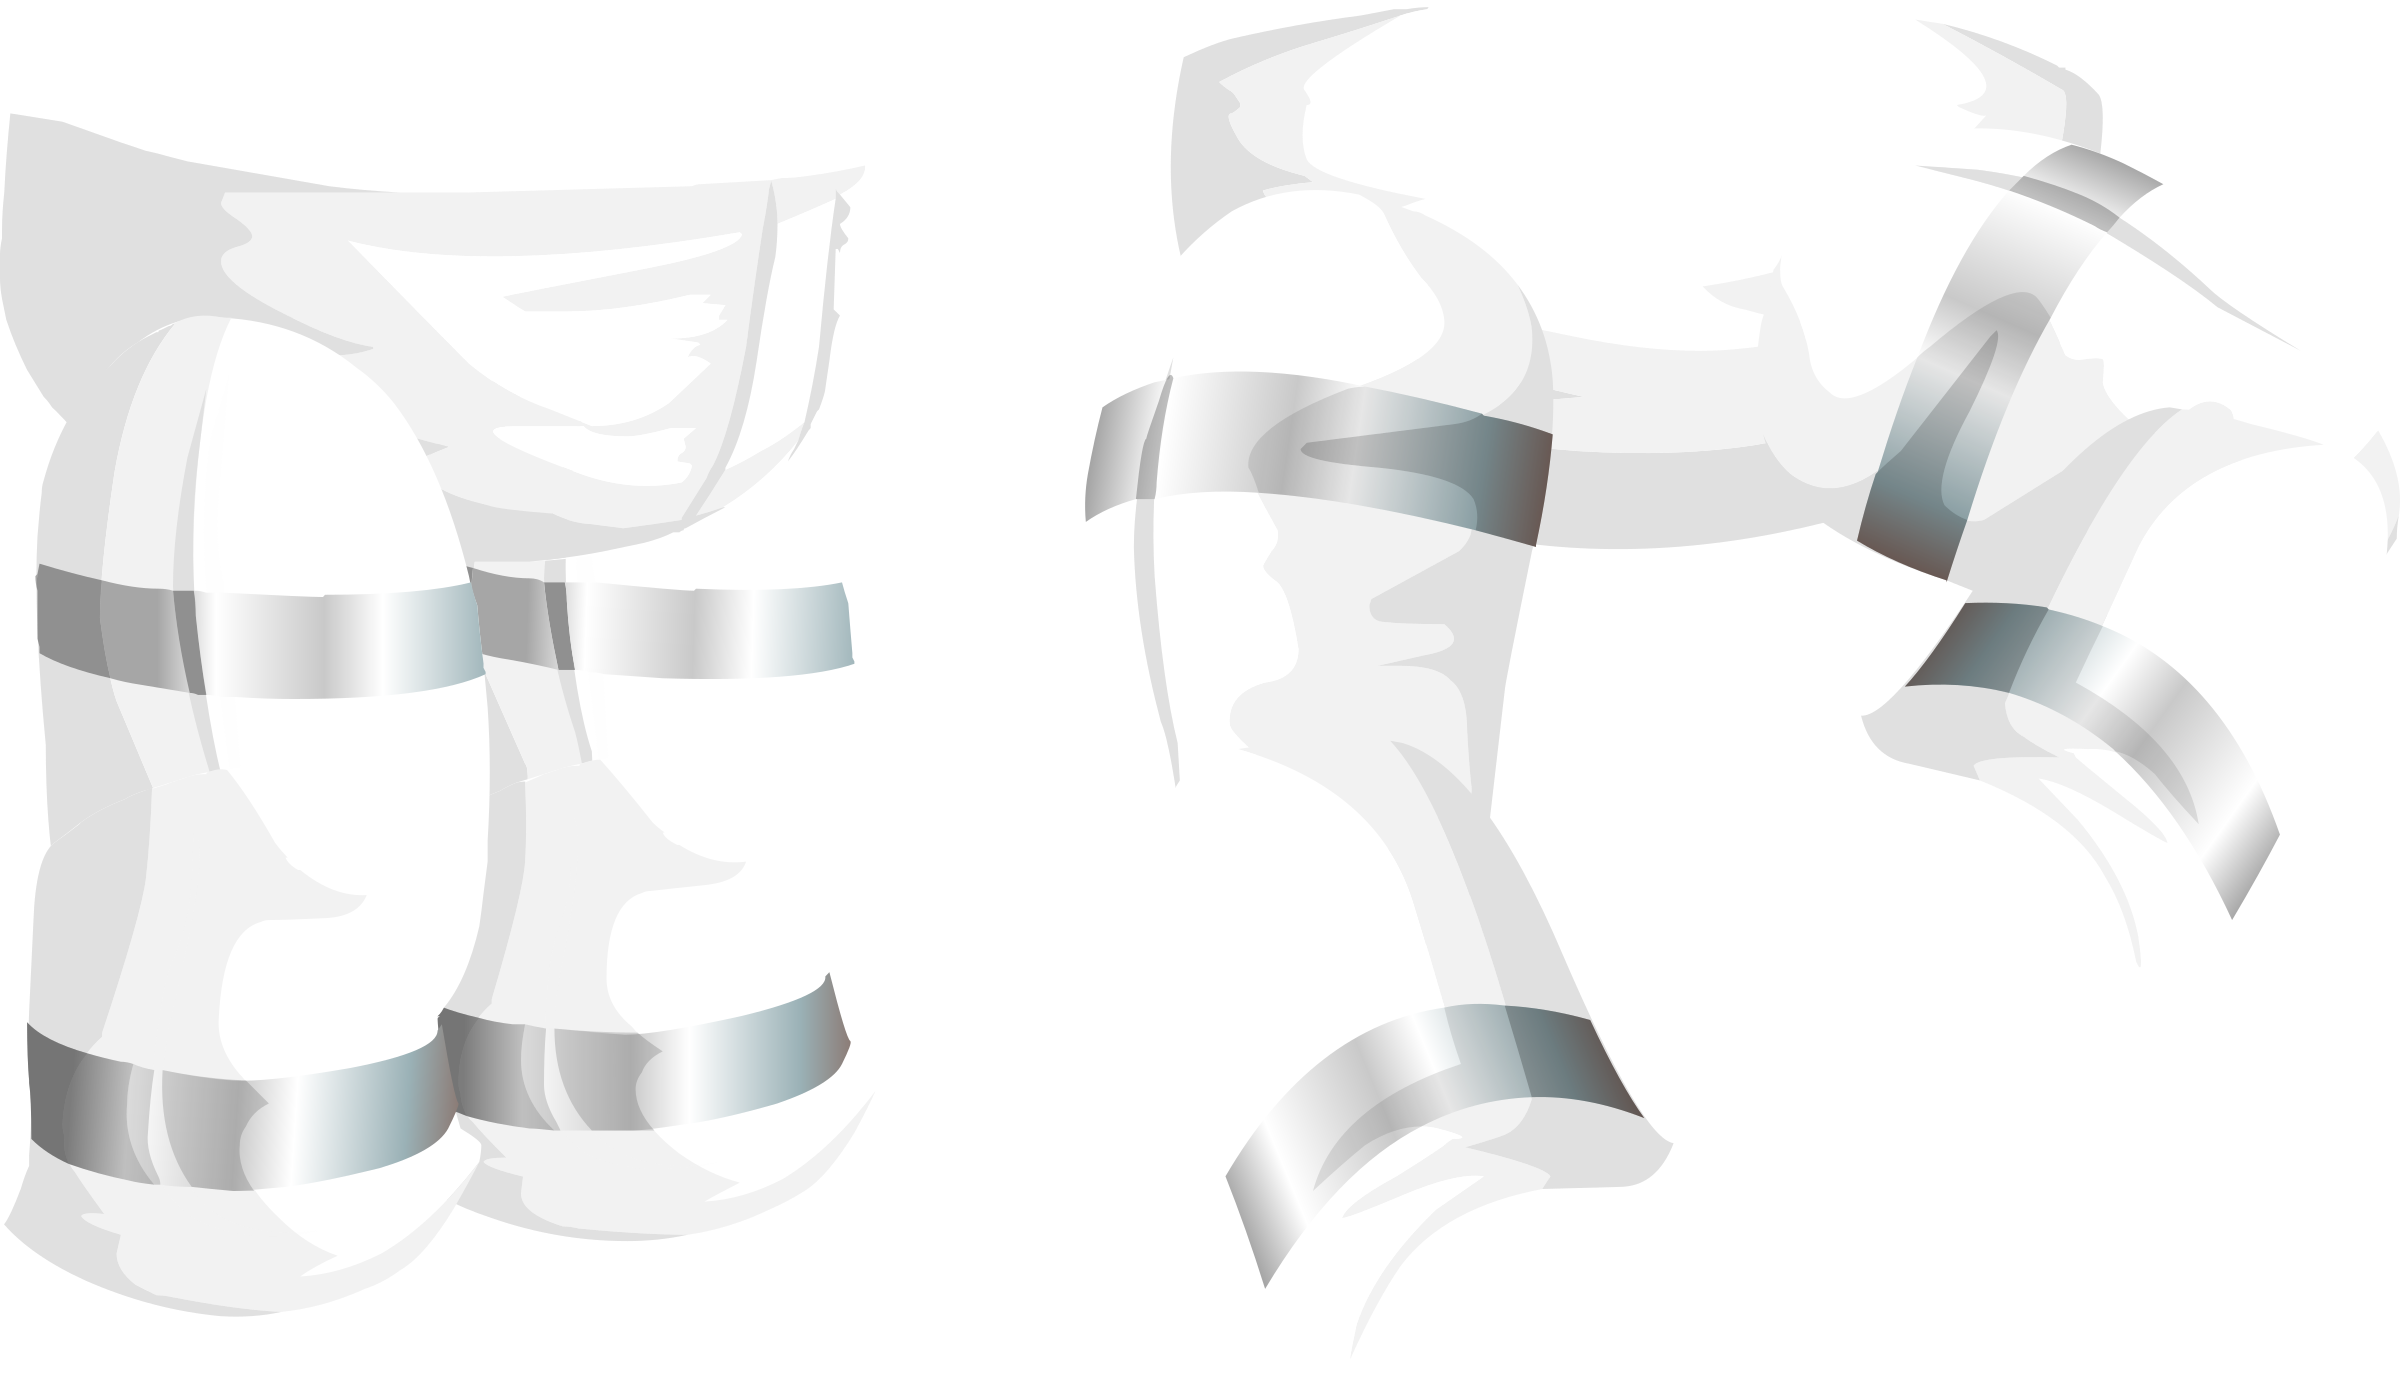 Avatar Wardrobe Pants Reflective Pants by glitch